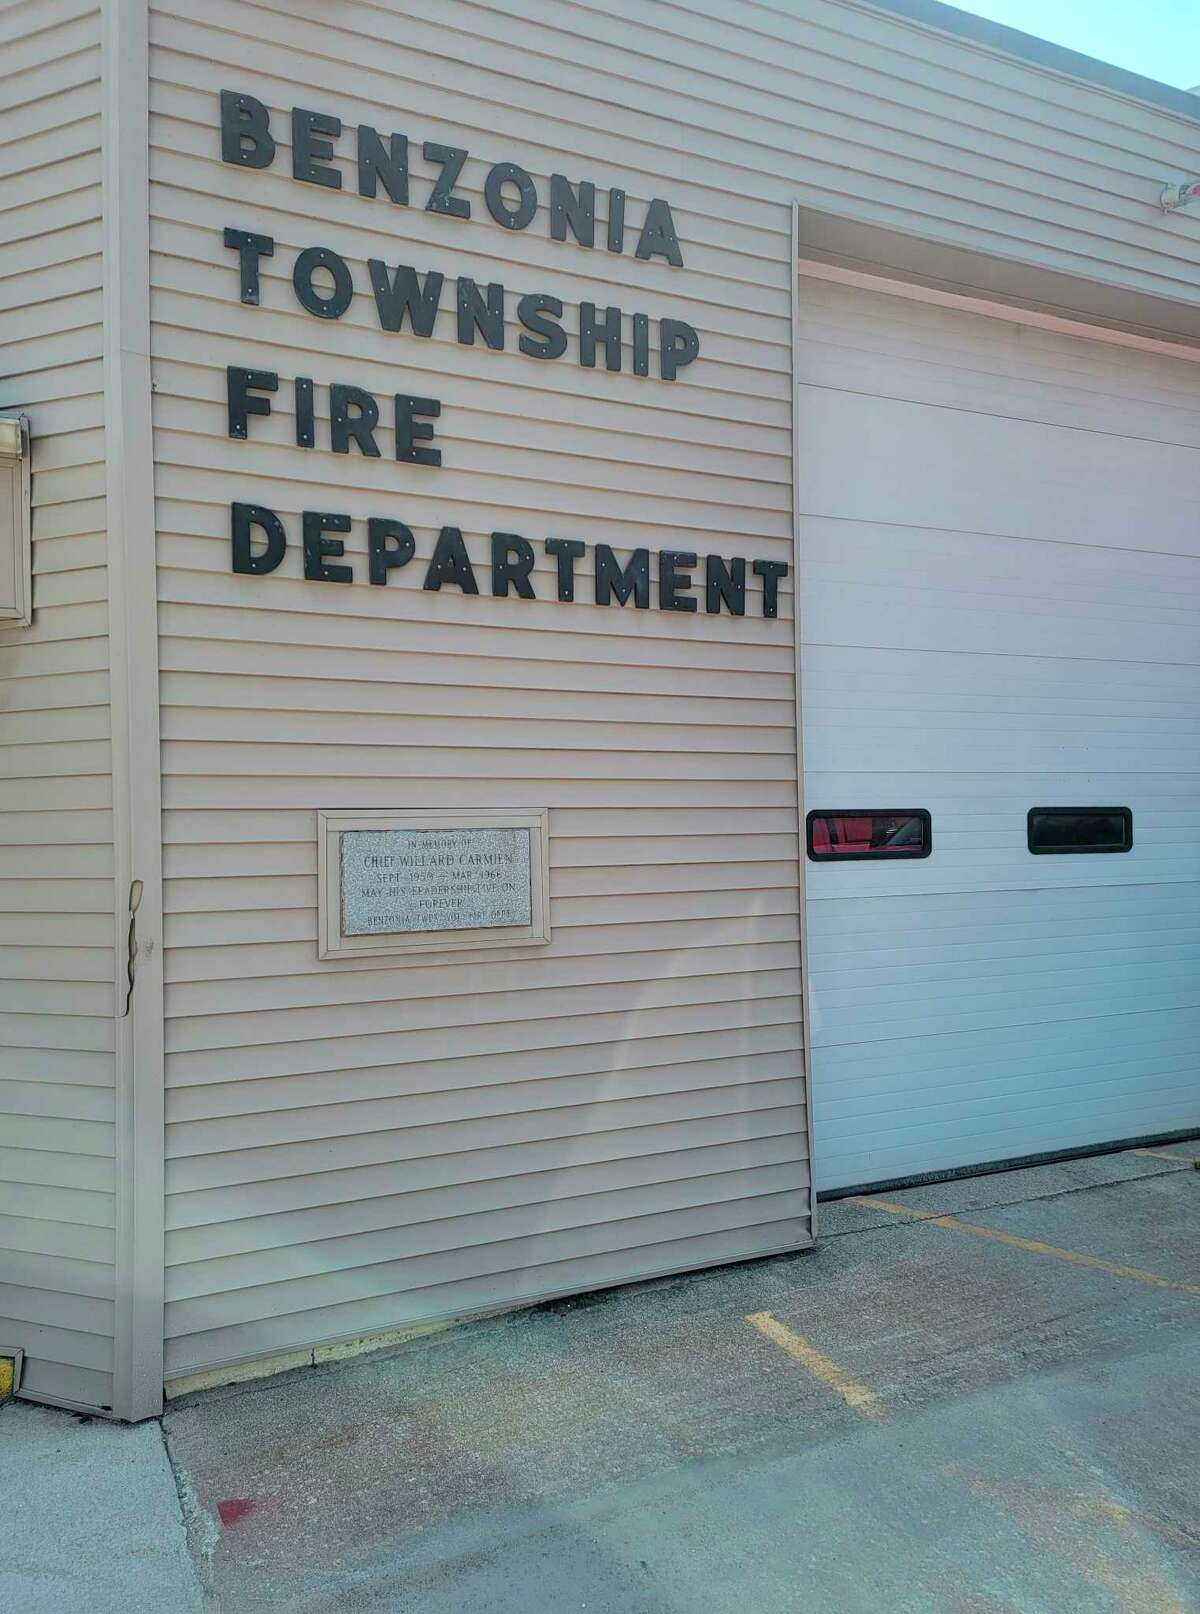 Voters in Benzie will decided on several millage items in November, including the idea of a bond forbuilding a new firehouse and township offices in Benzonia Township. (Colin Merry/Record Patriot)